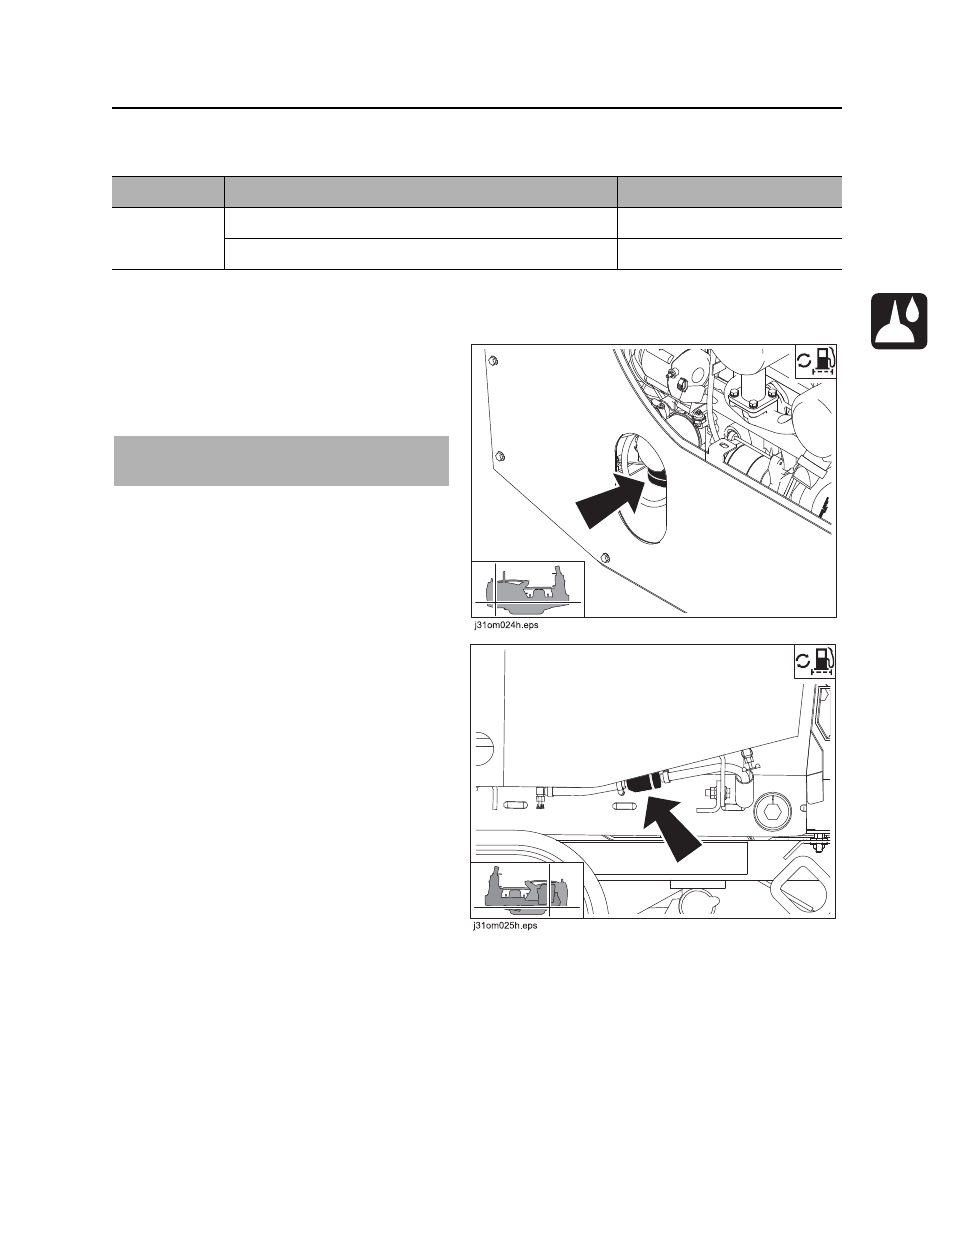 100 hour, Drilling unit, Jt5 operator's manual | Ditch Witch JT5 User Manual  | Page 142 / 161